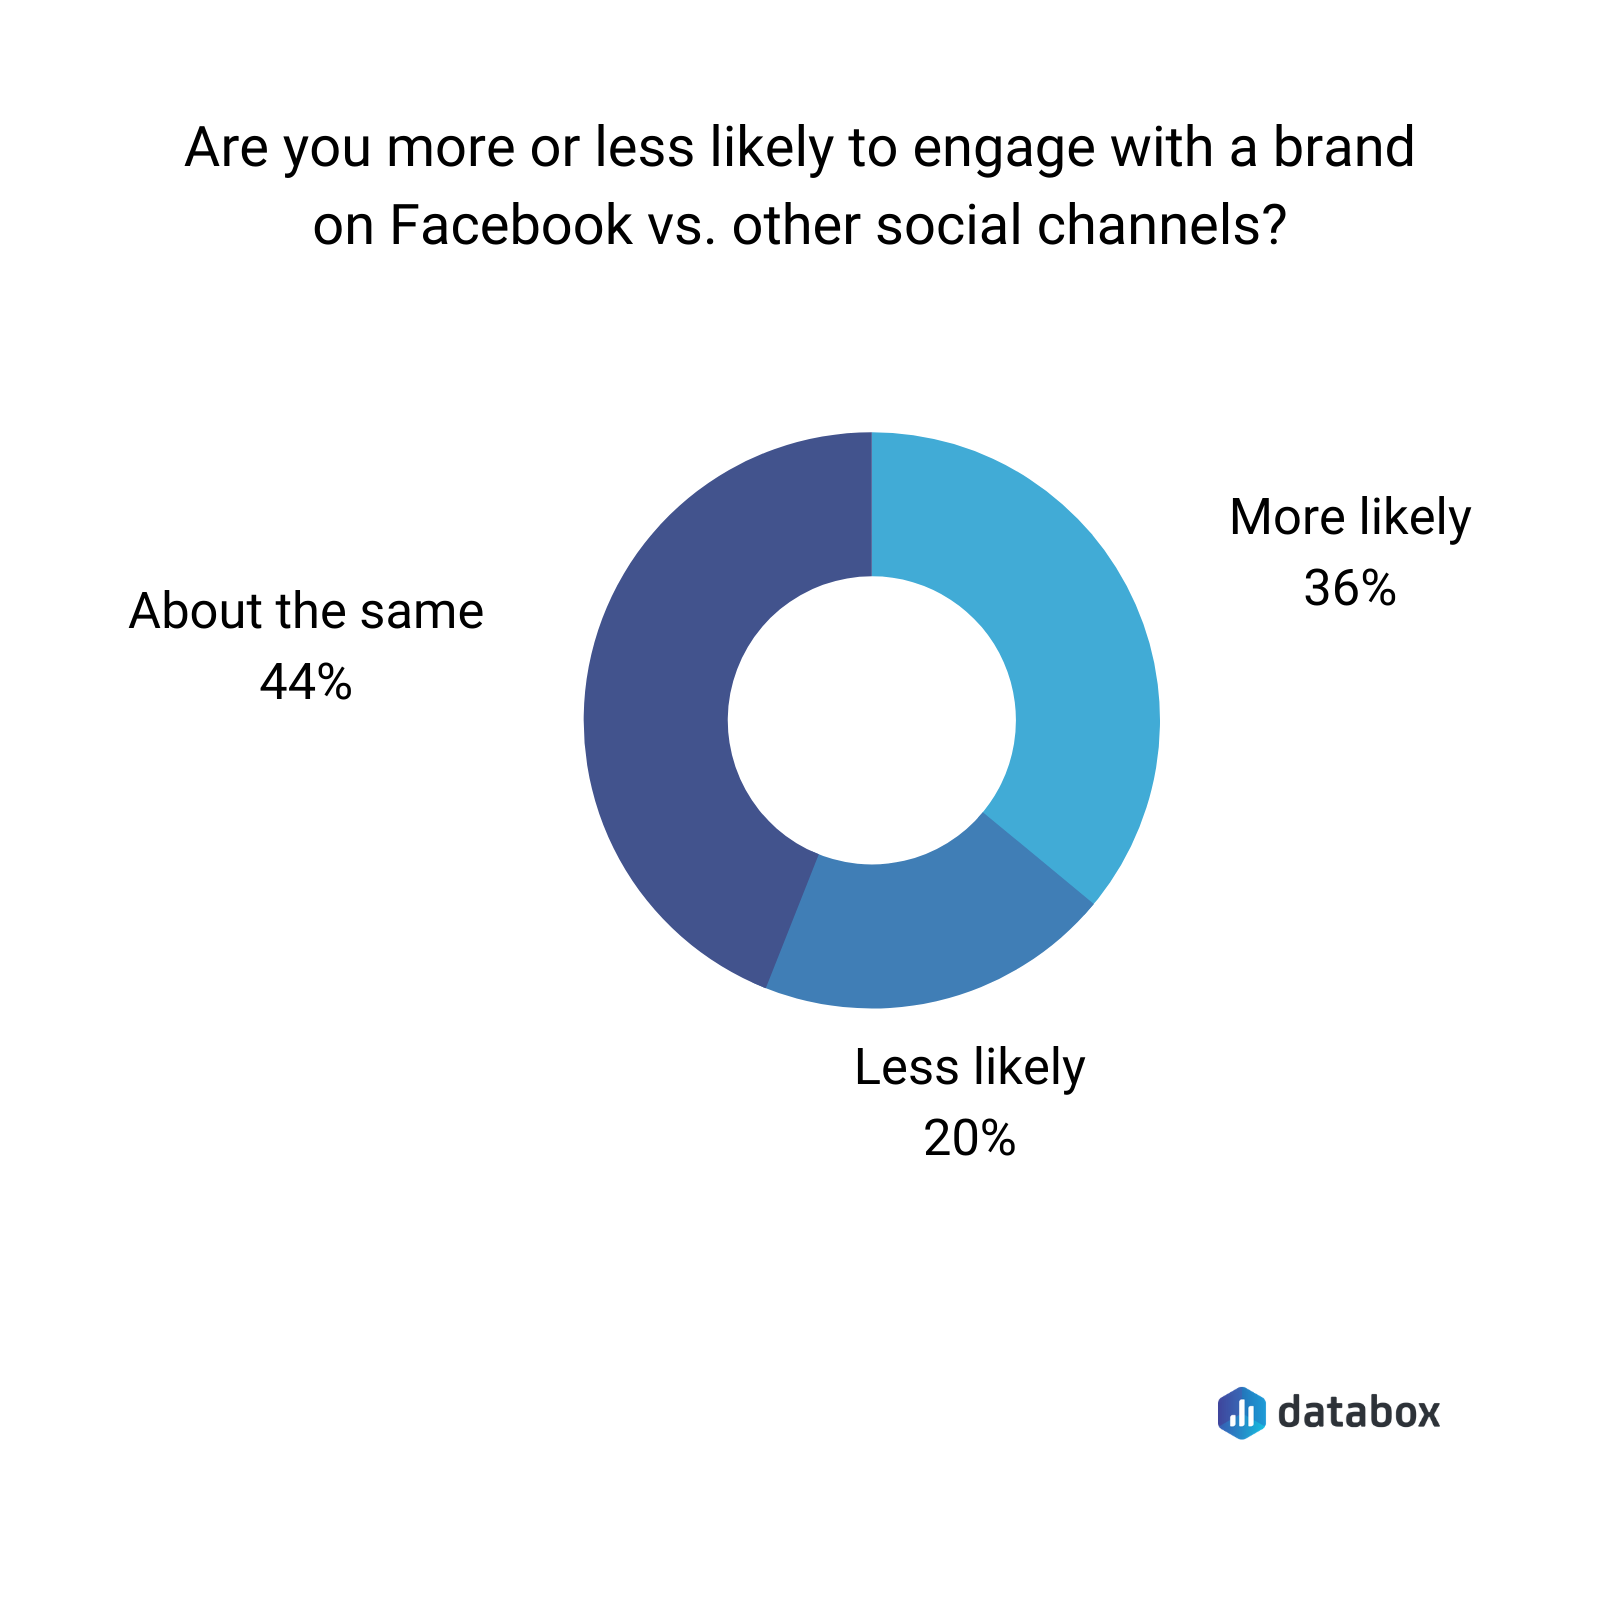 are you more or less likely to engage with a brand on facebook vs. other social media channels?